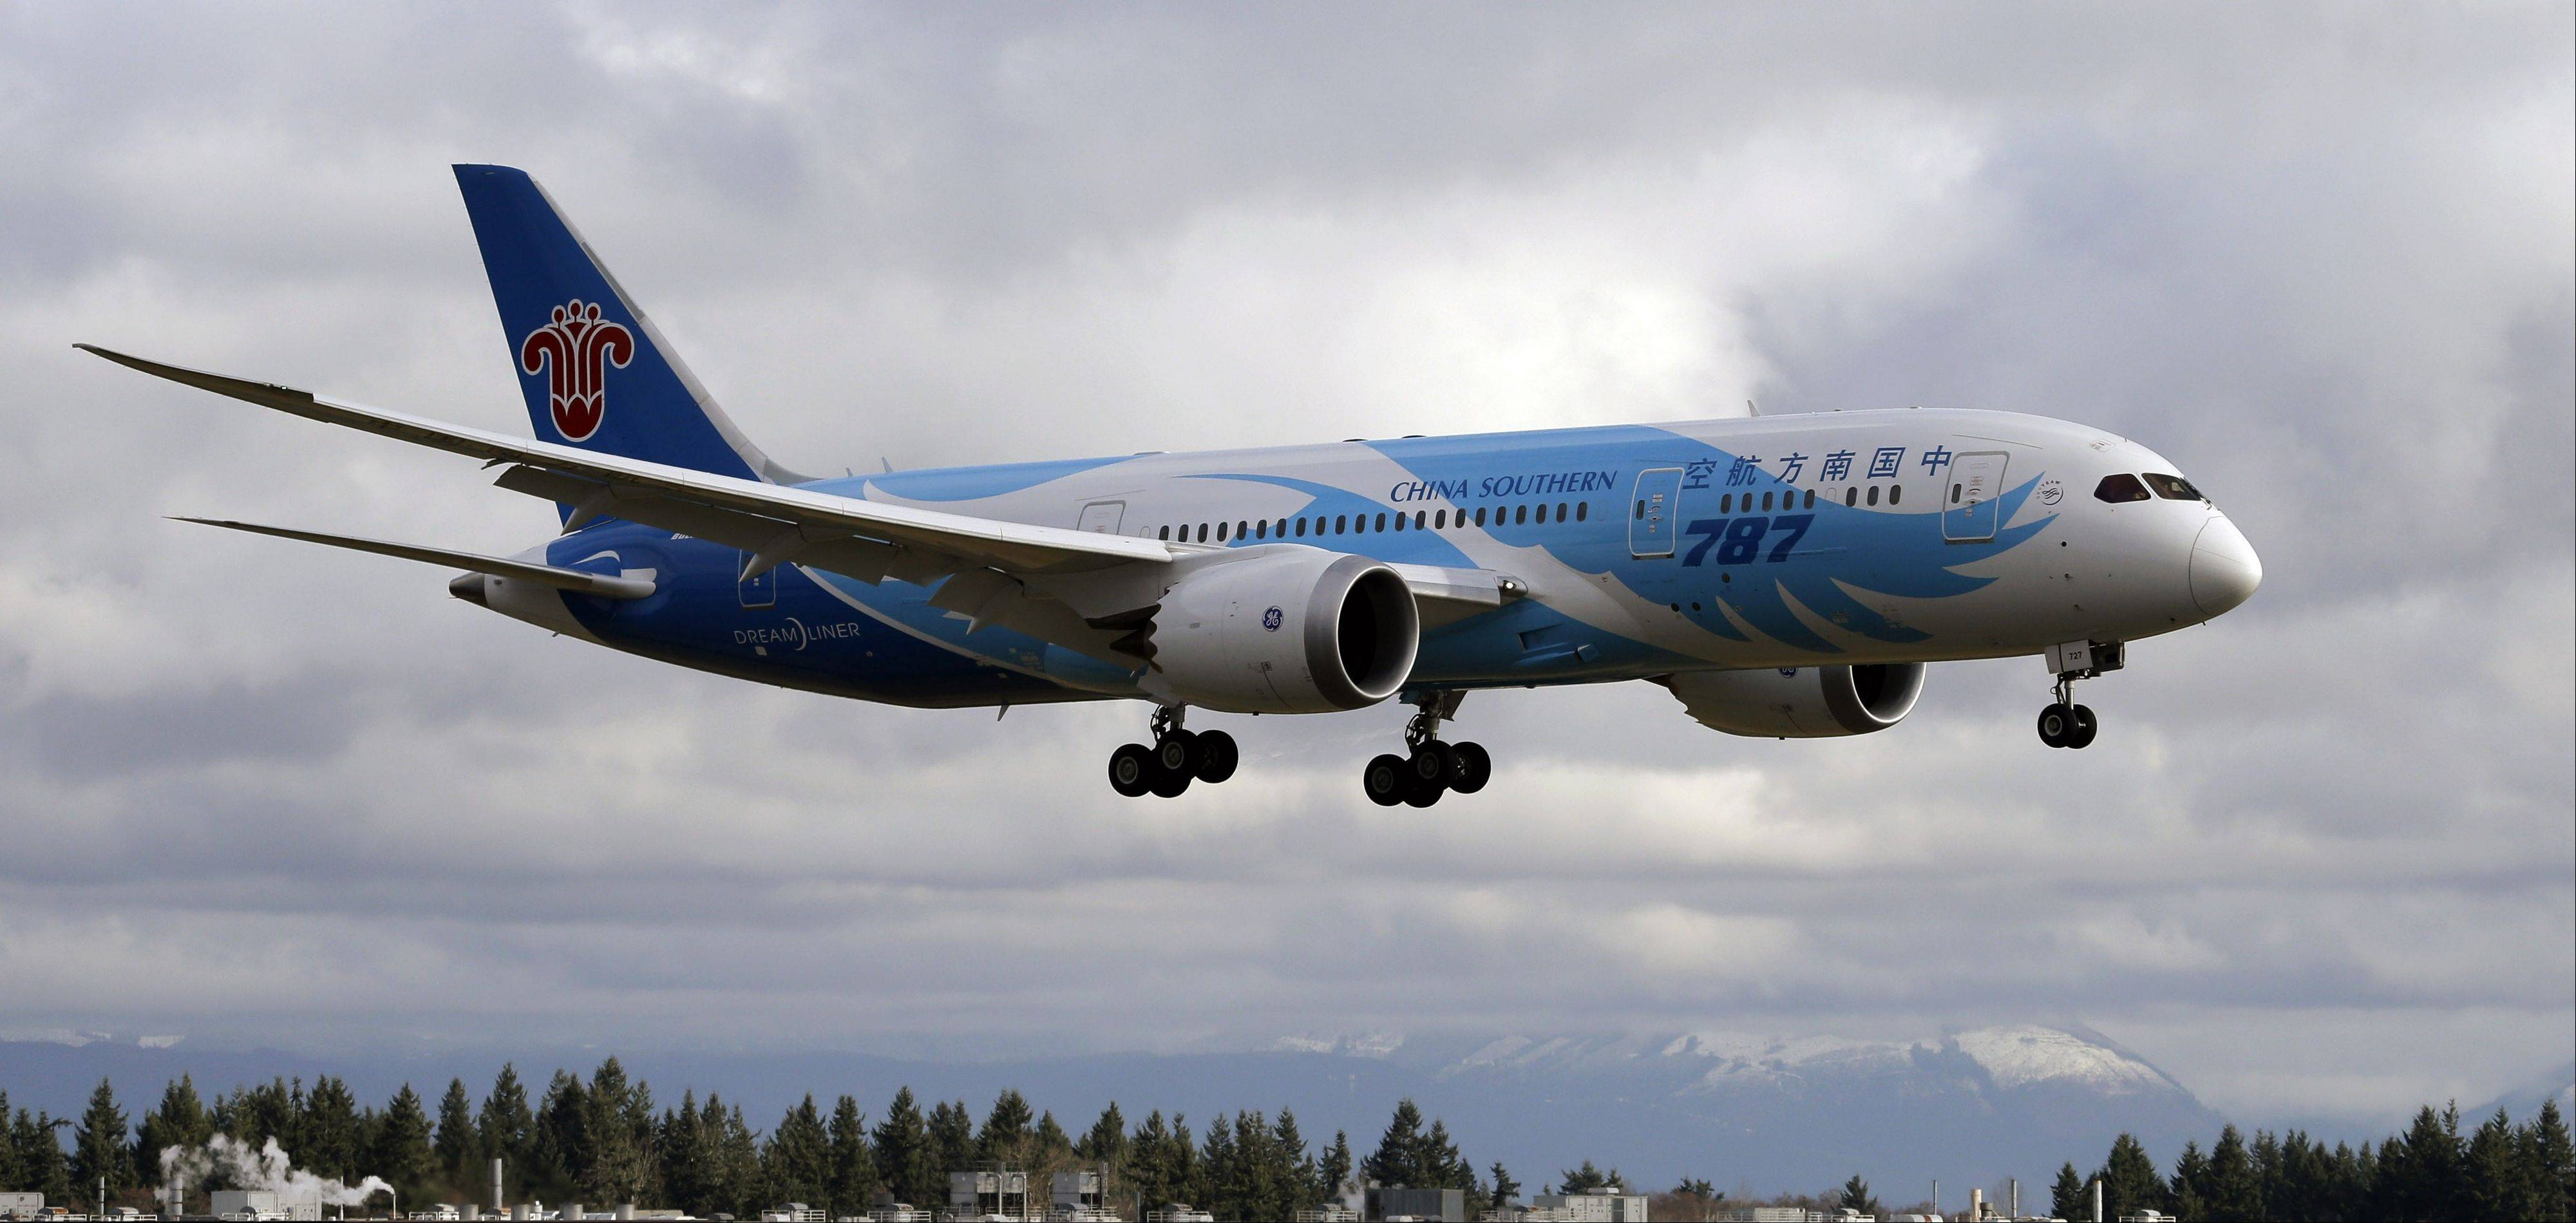 Boeing conducted another test flight of a 787 Dreamliner on Monday, the second since the FAA grounded Boeing's newest airliner in January.